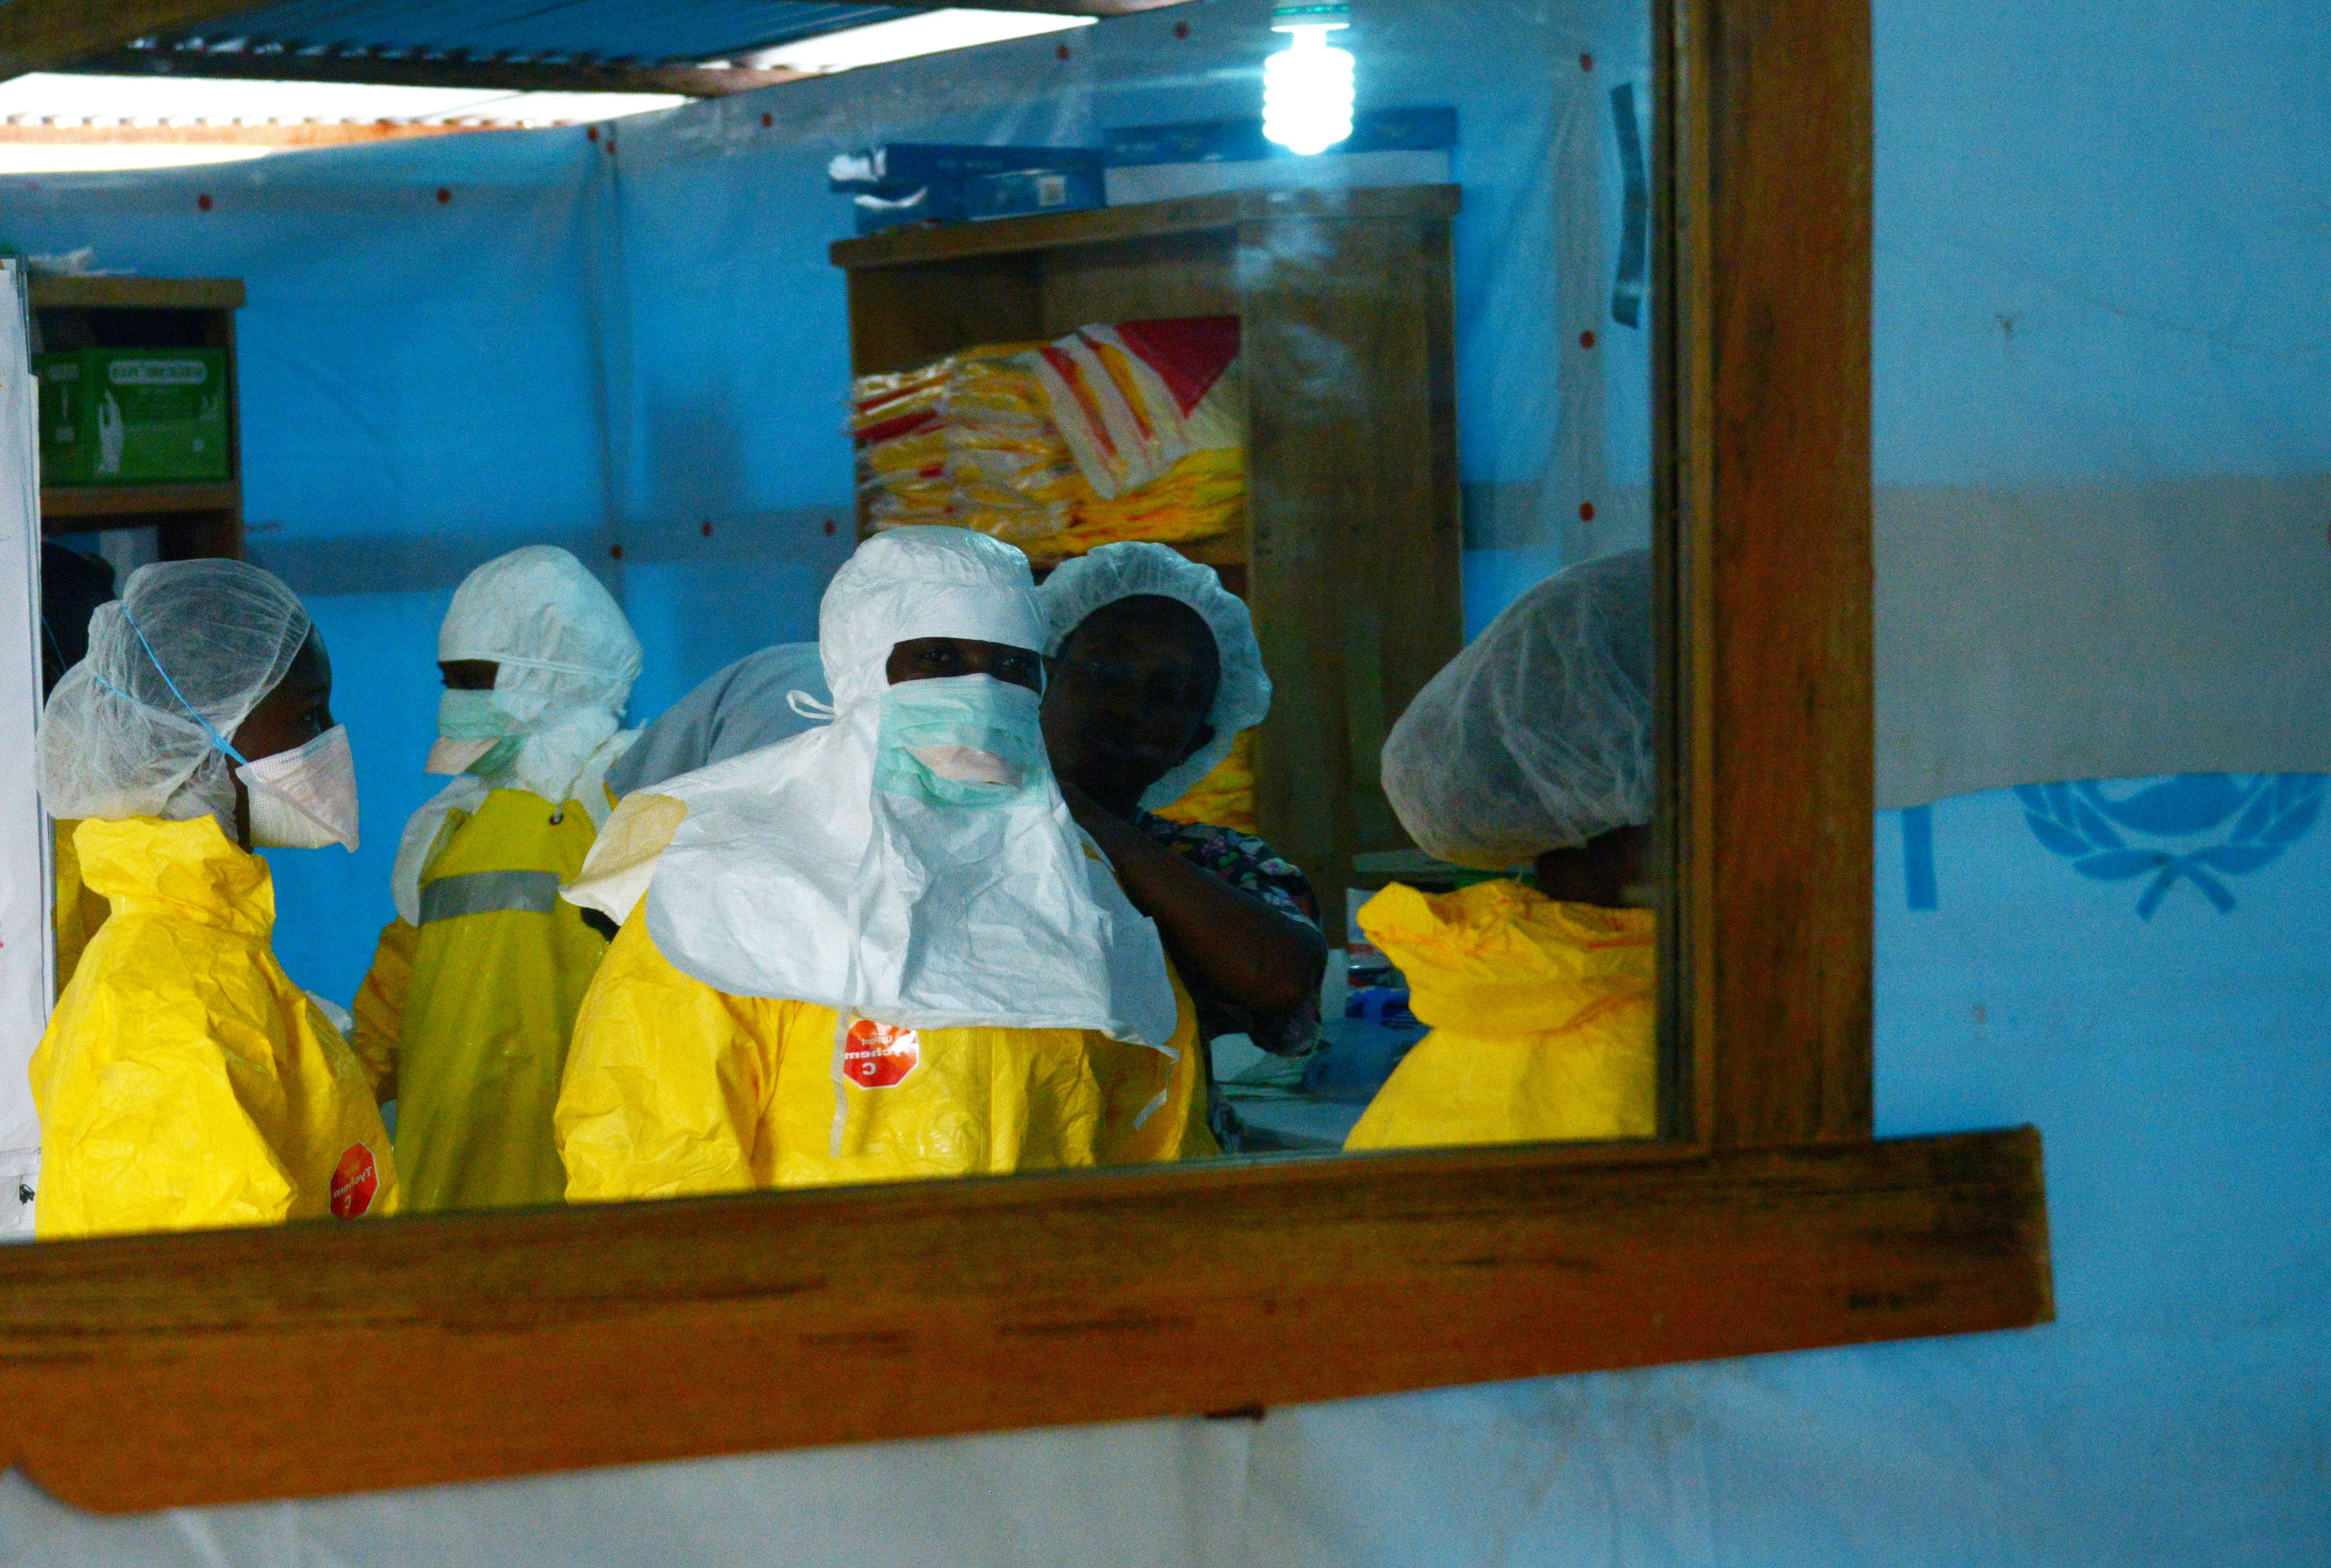 Health workers before entering a high-risk area on Sept. 7, 2014, at Elwa Hospital in Monrovia, Liberia, which is run by Doctors Without Borders